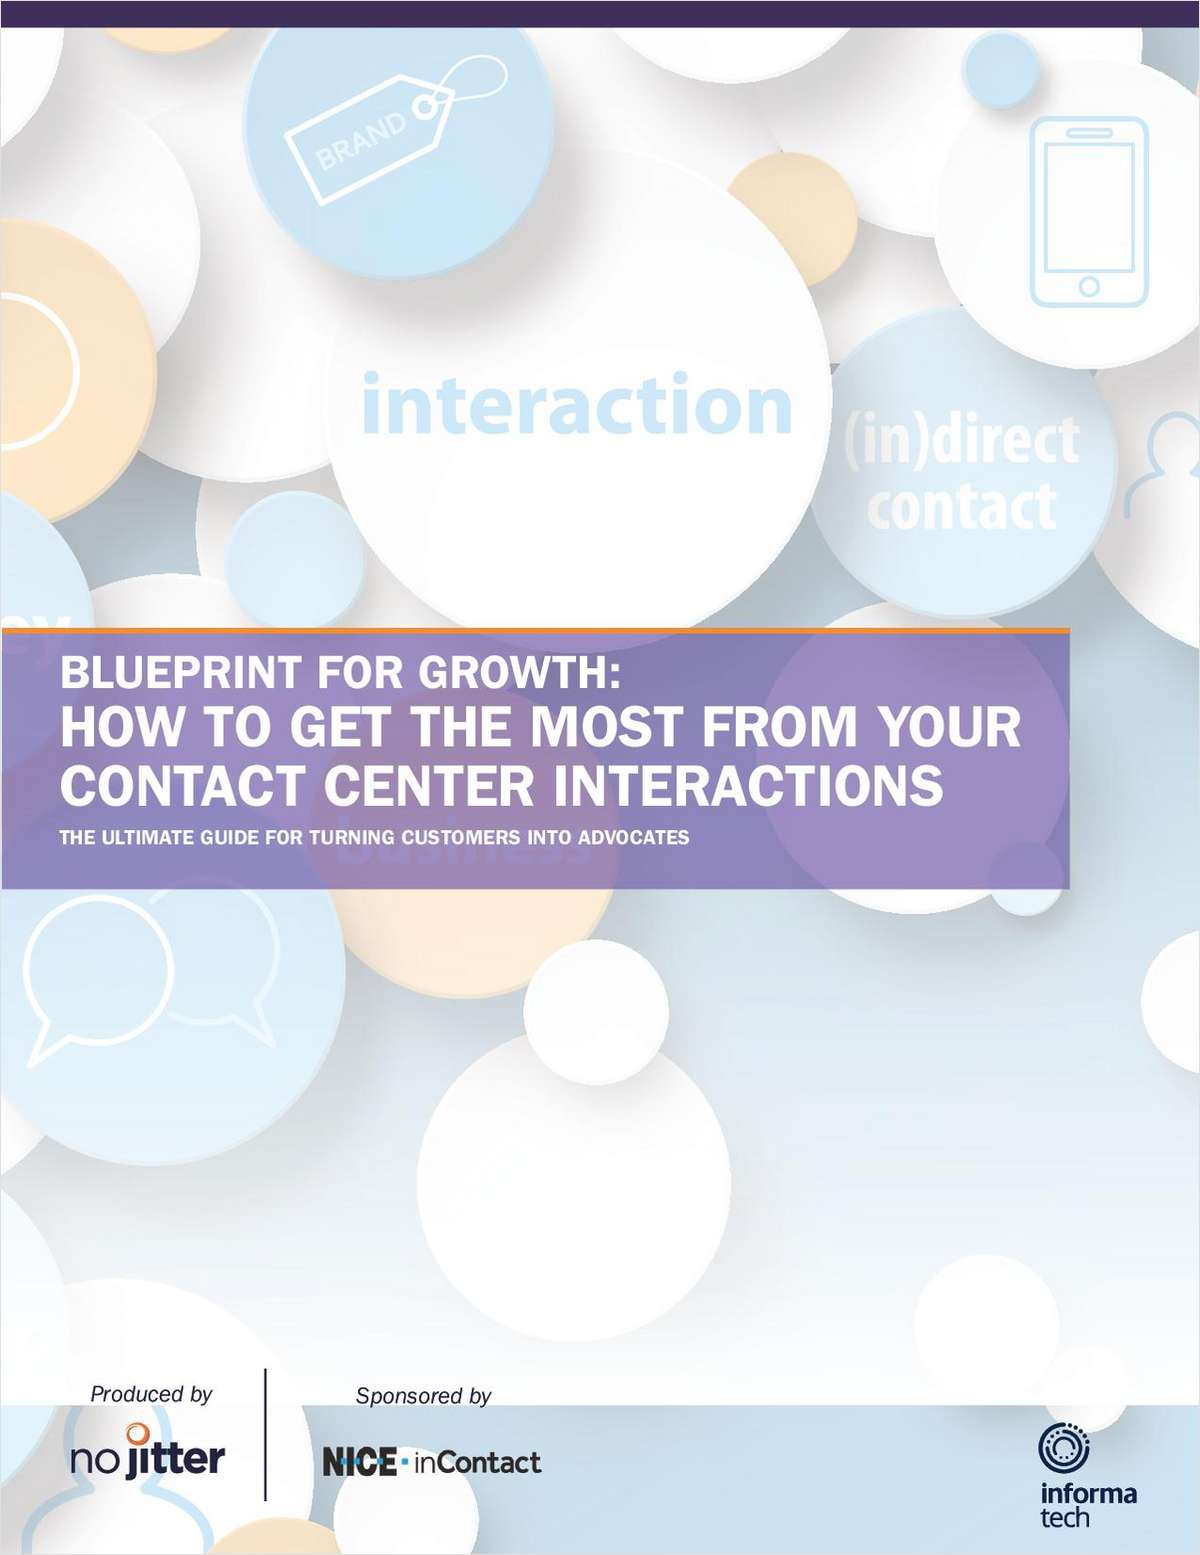 Blueprint for Growth: The Ultimate Guide for Turning Customers into Advocates